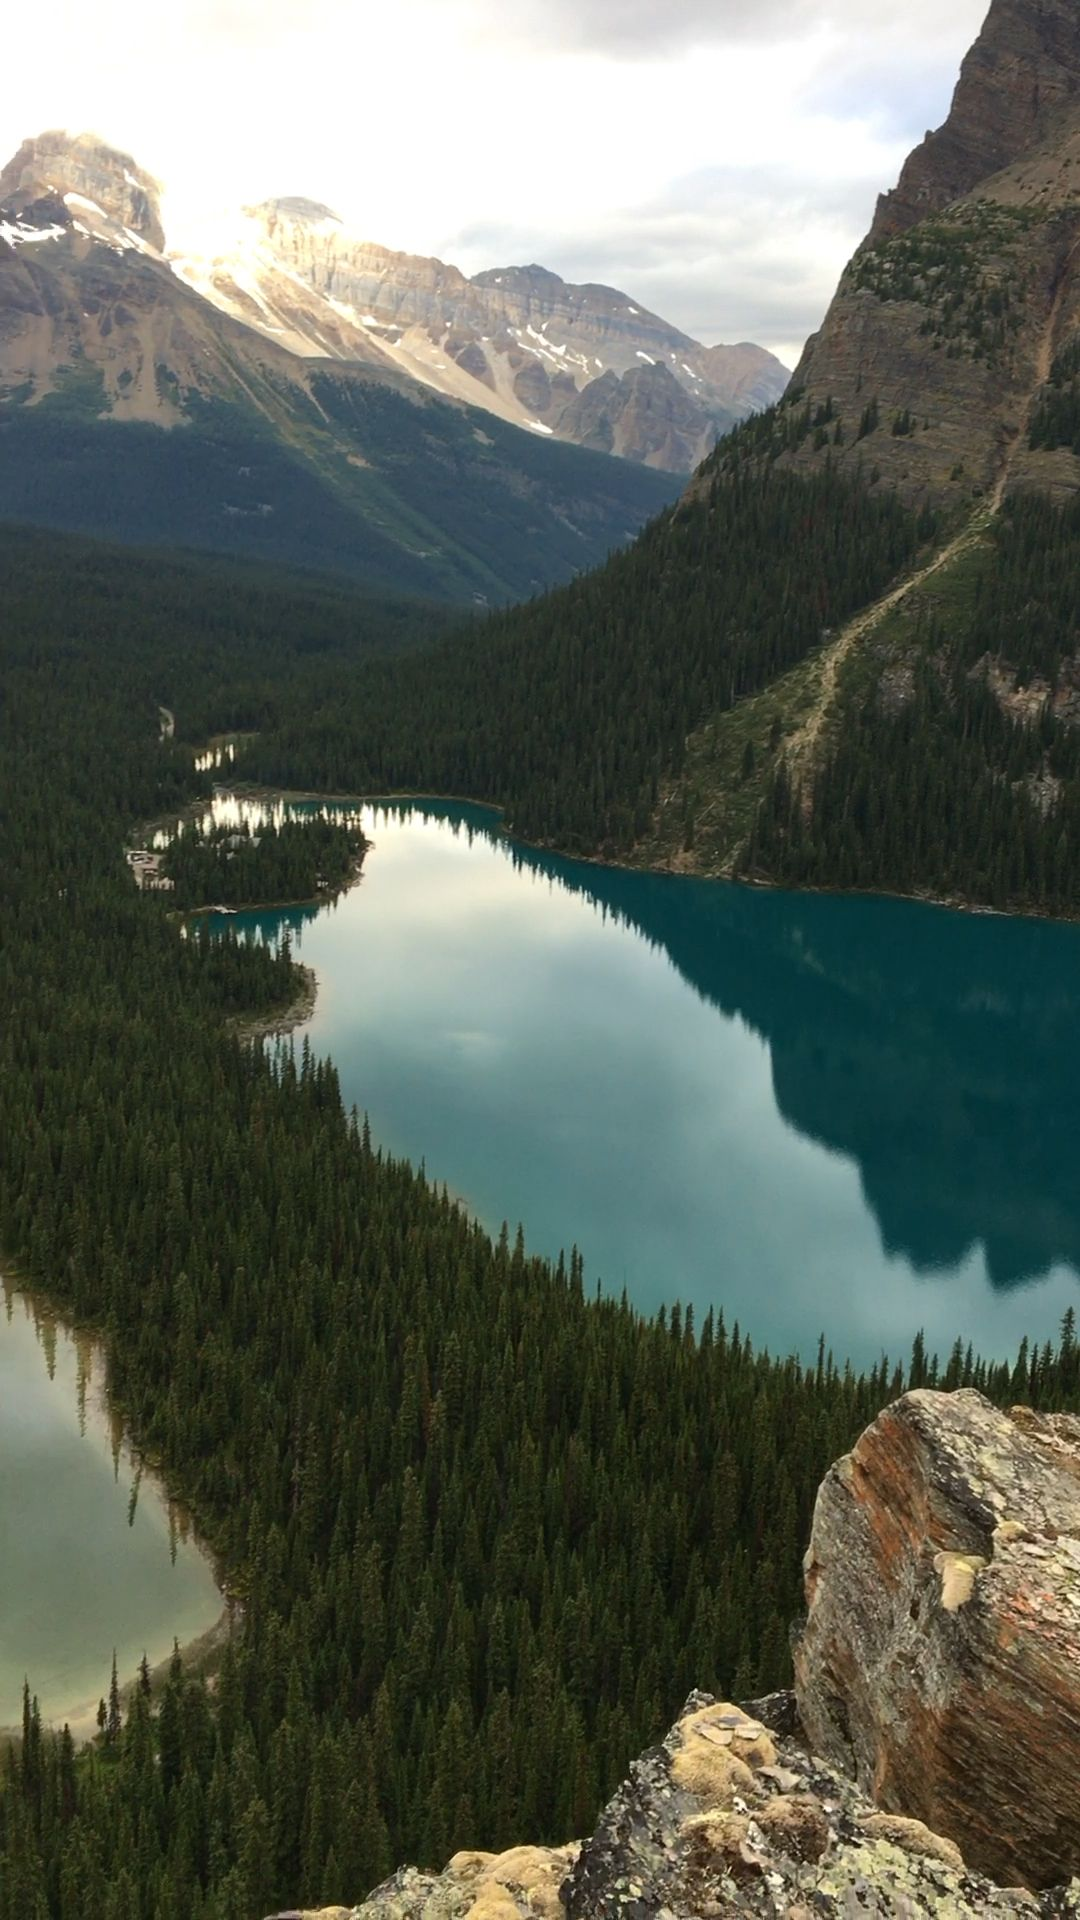 Our Lake O'Hara hiking guide covers all you need to know for an amazing day hike to these beautiful lakes! Click through to read more.